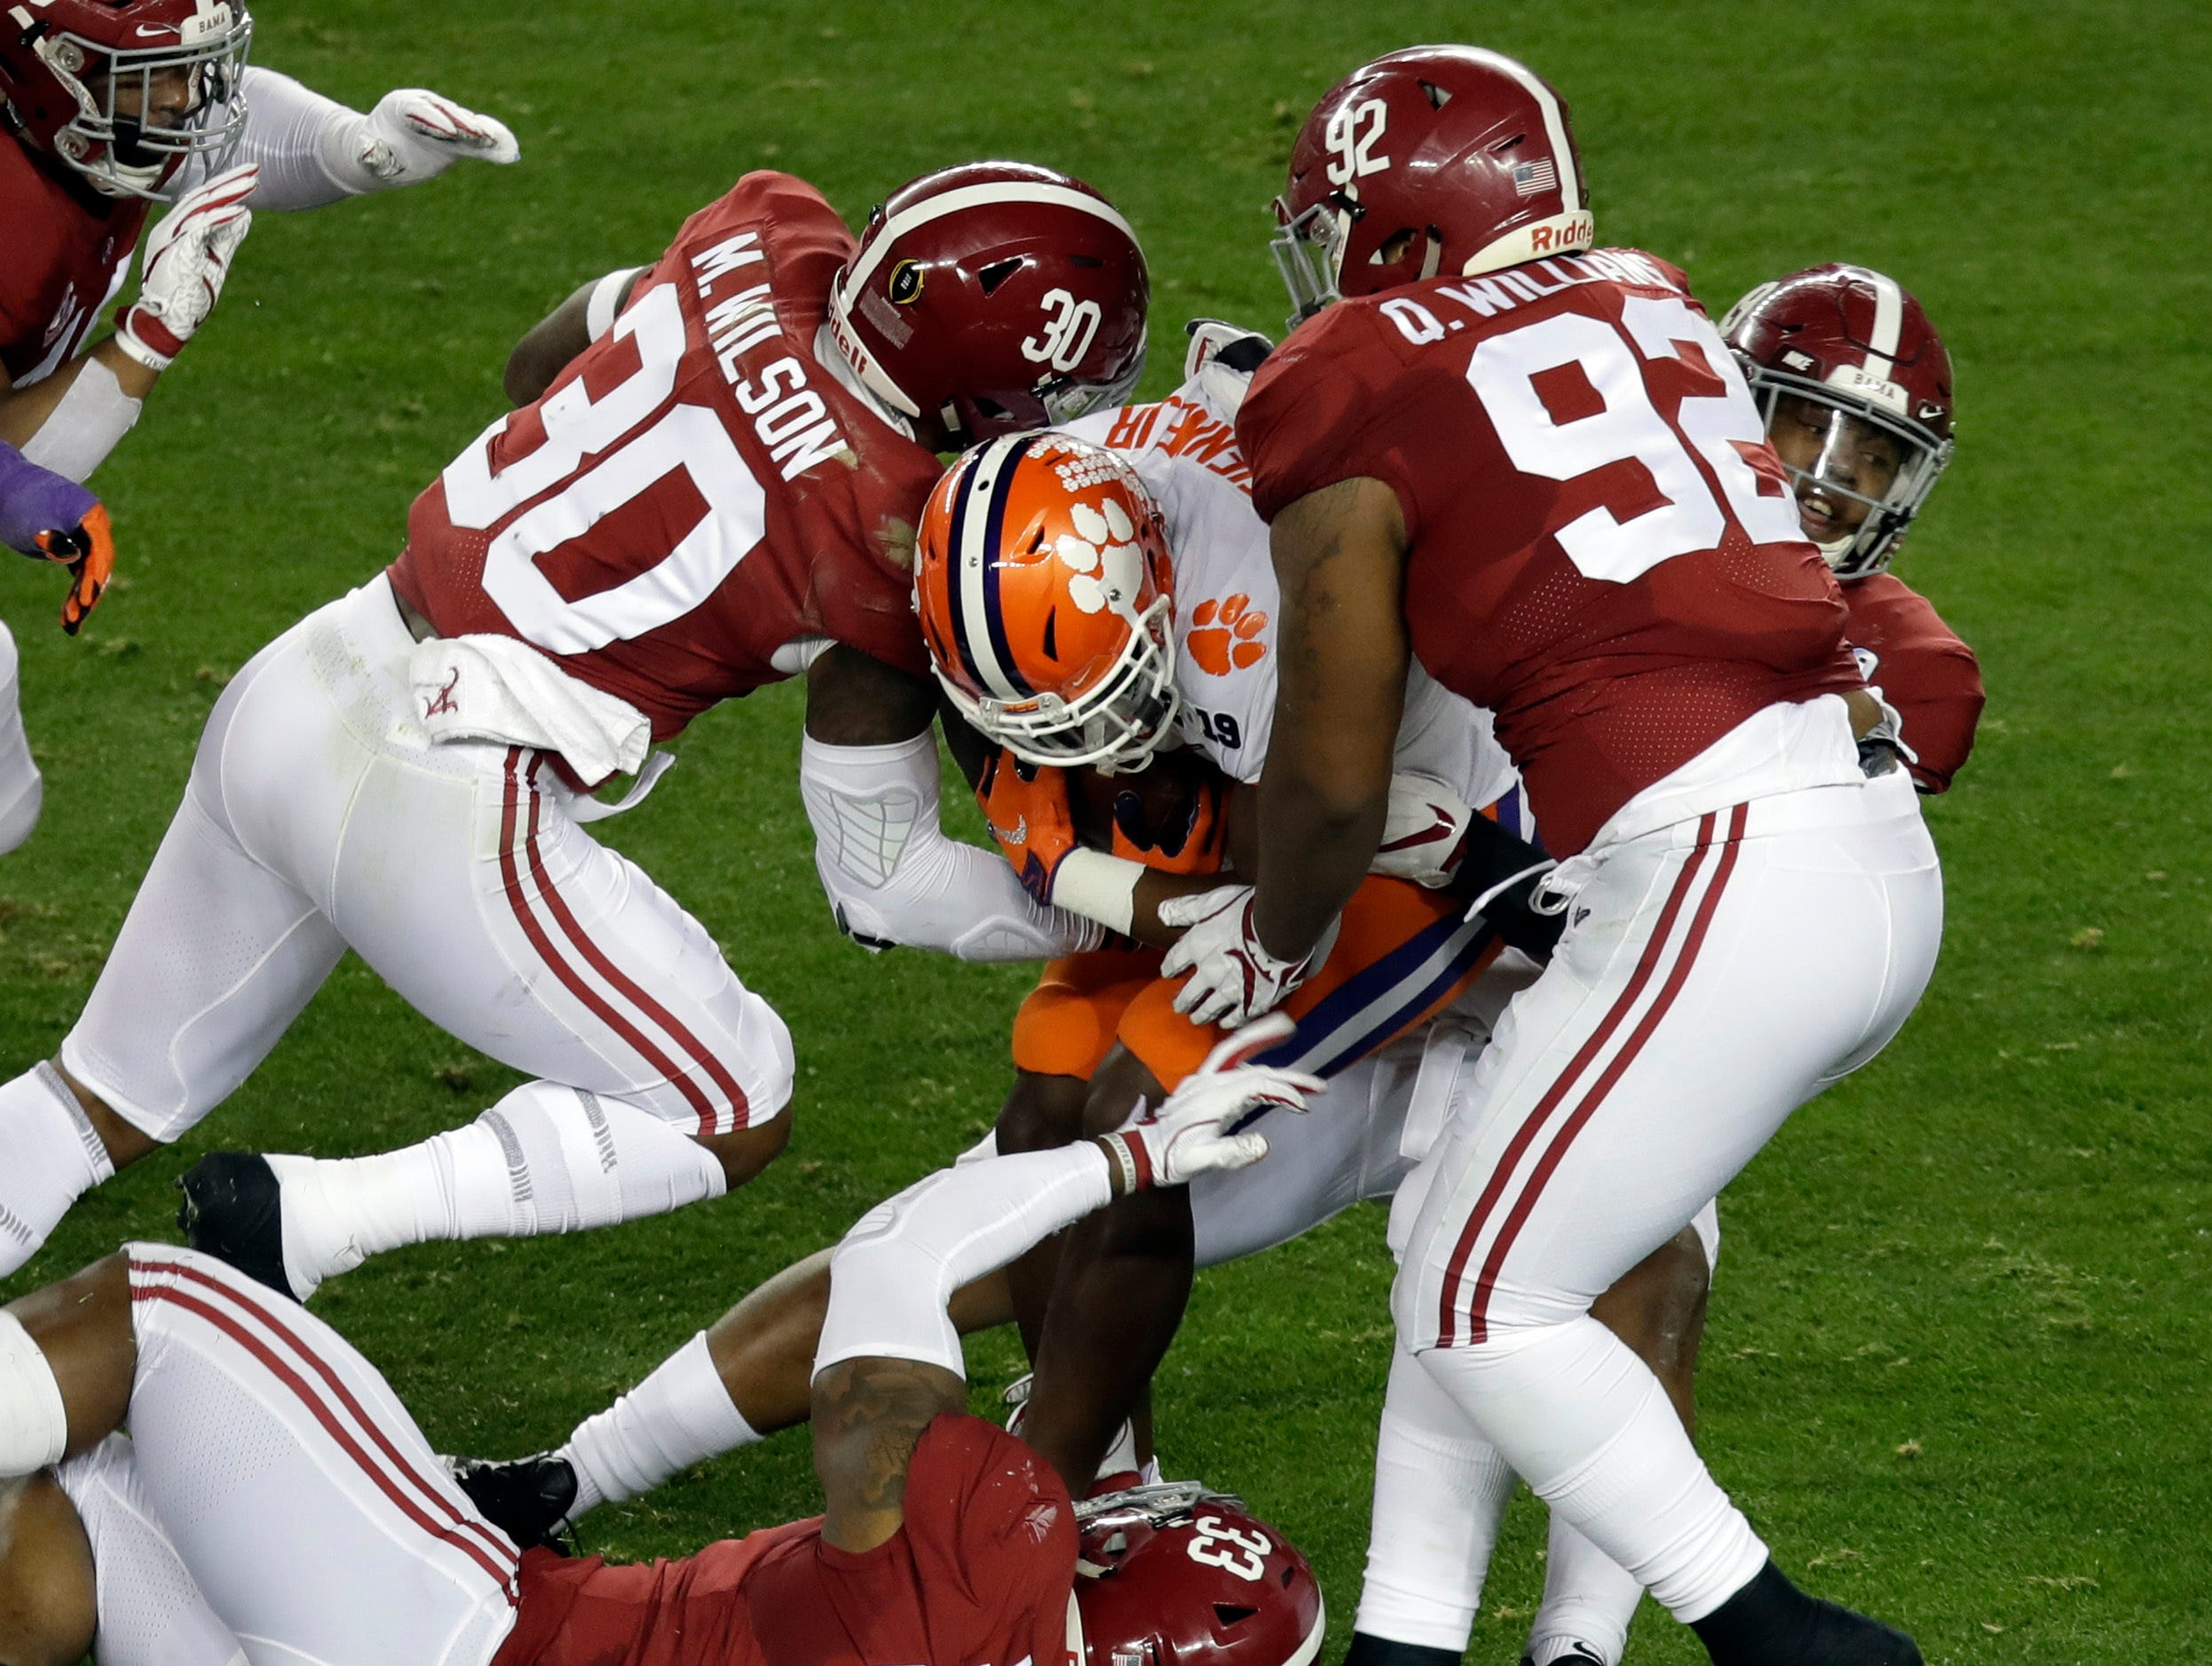 Clemson's Travis Etienne is stopped during the first half the NCAA college football playoff championship game against Alabama, Monday, Jan. 7, 2019, in Santa Clara, Calif. (AP Photo/Jeff Chiu)